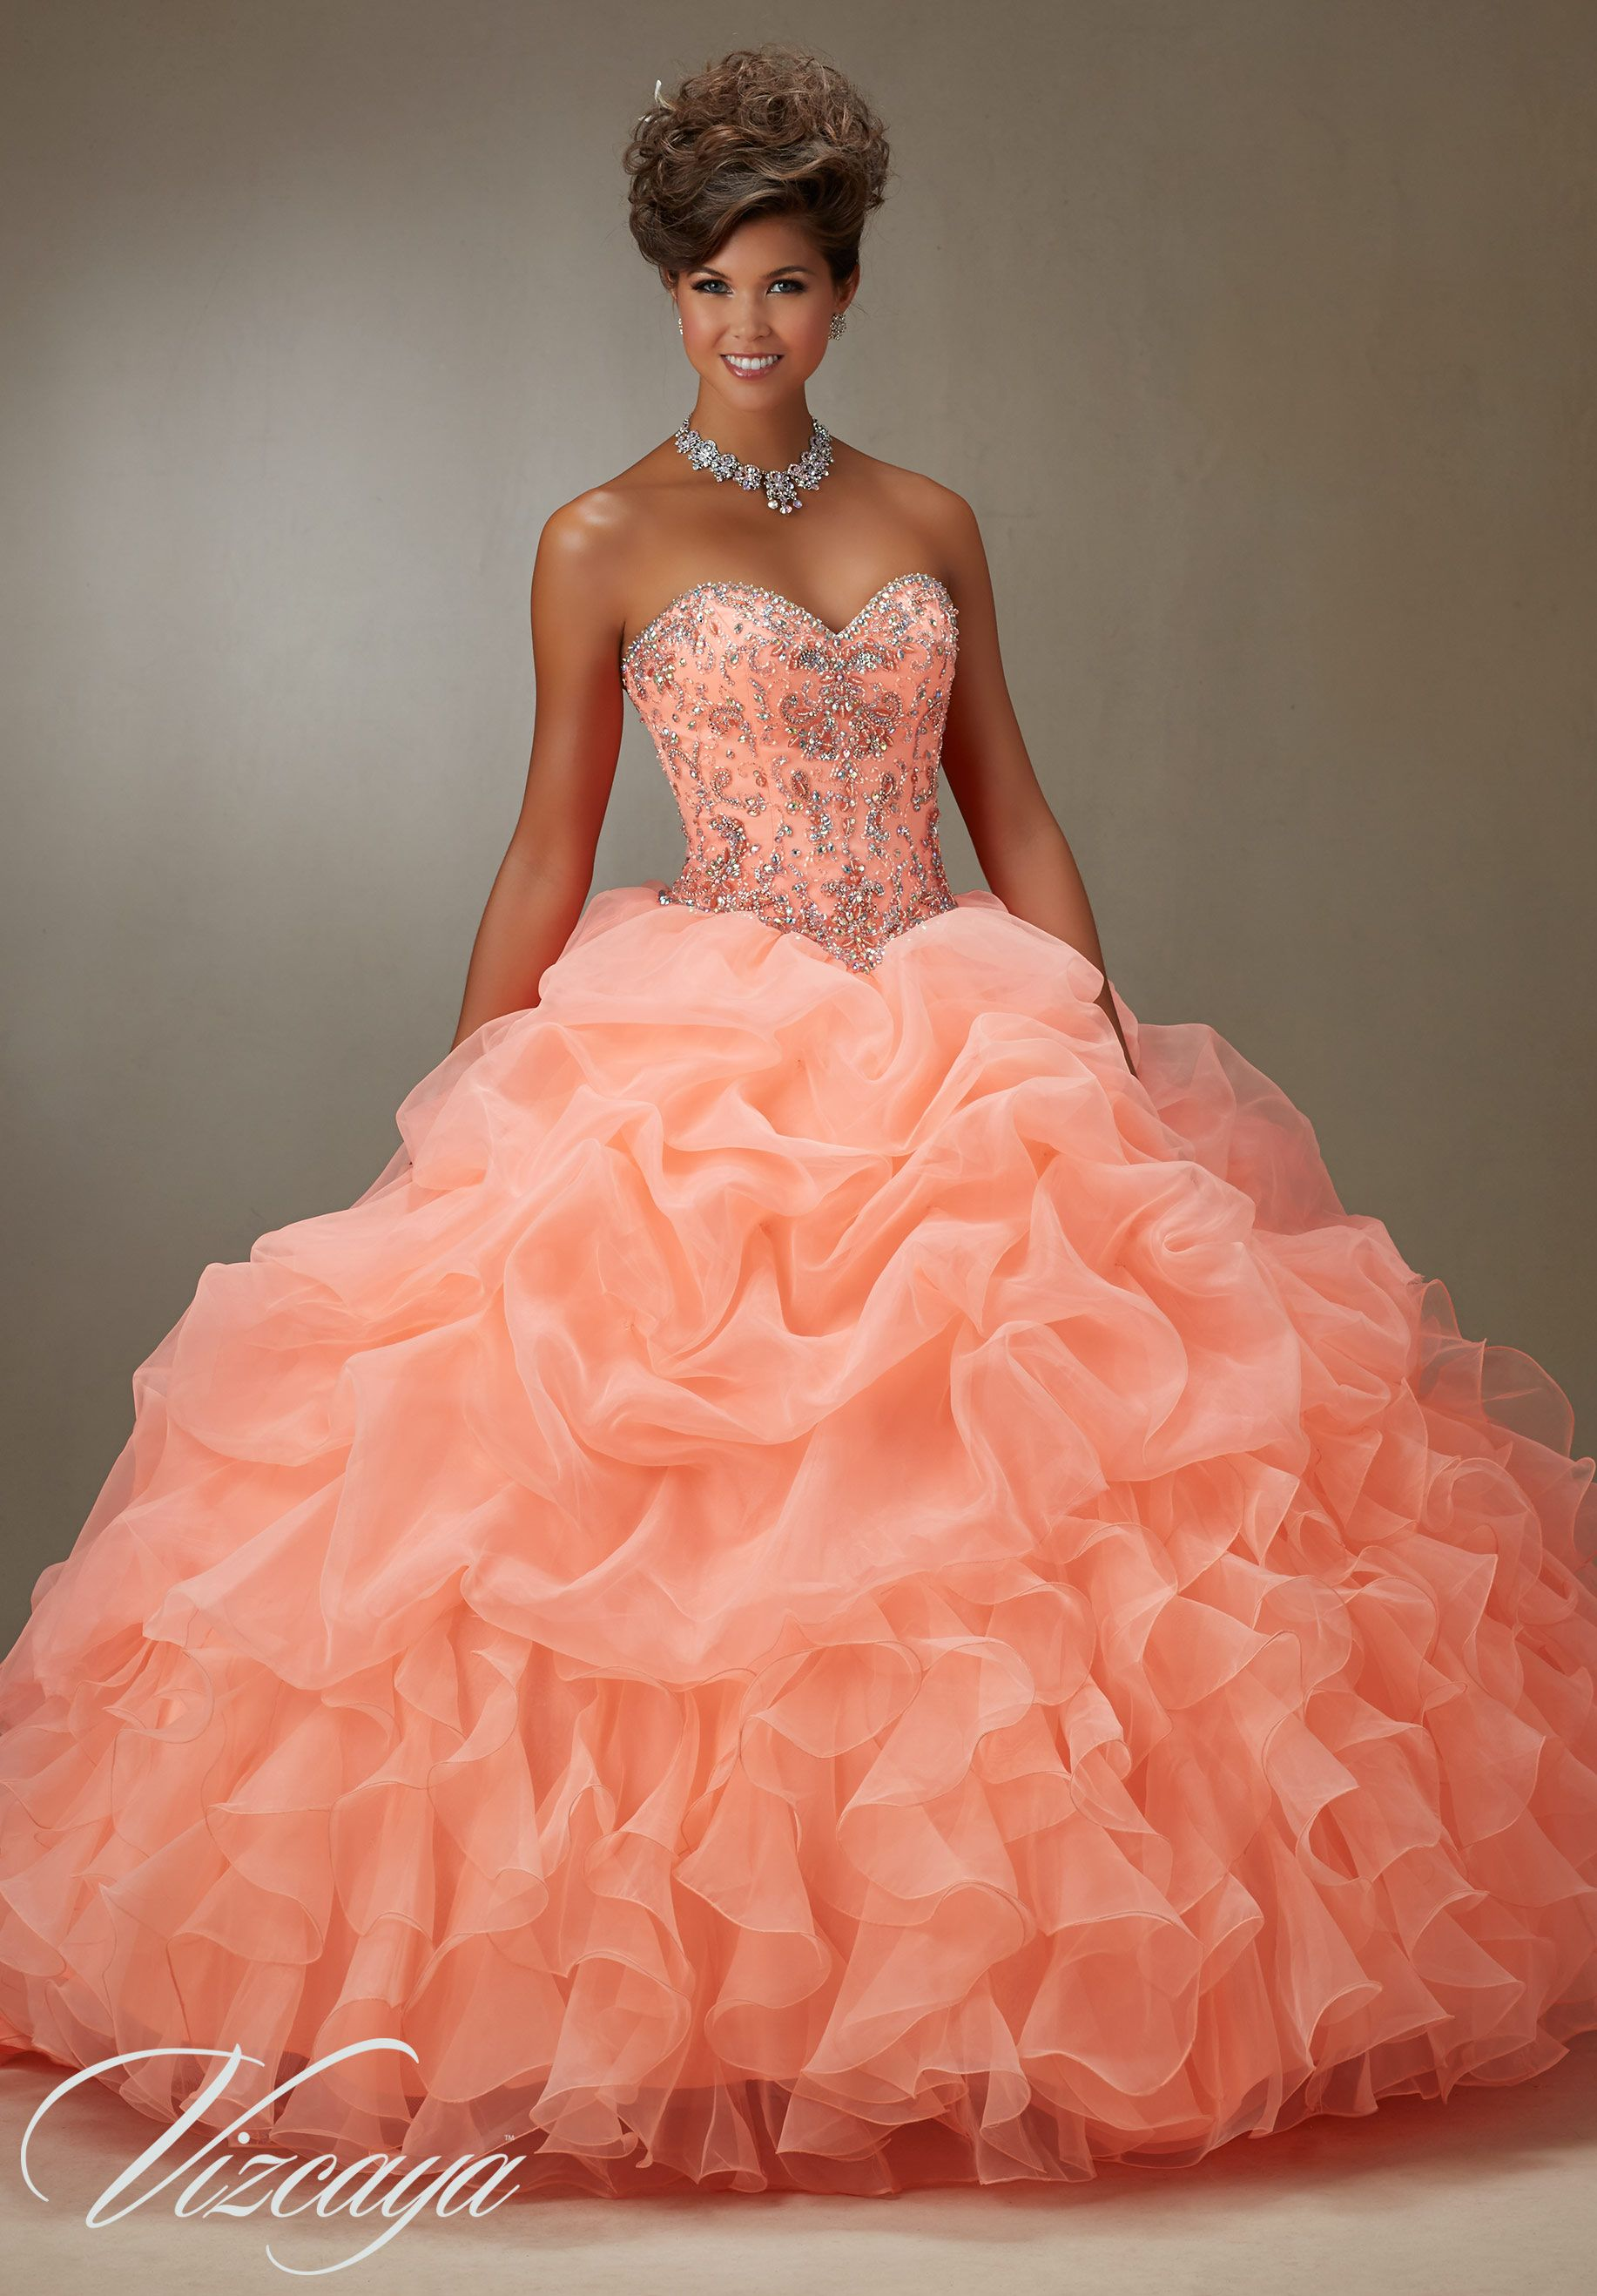 6663cb6e925 Ruched Organza Skirt with Beaded Bodice Quinceañera Dress